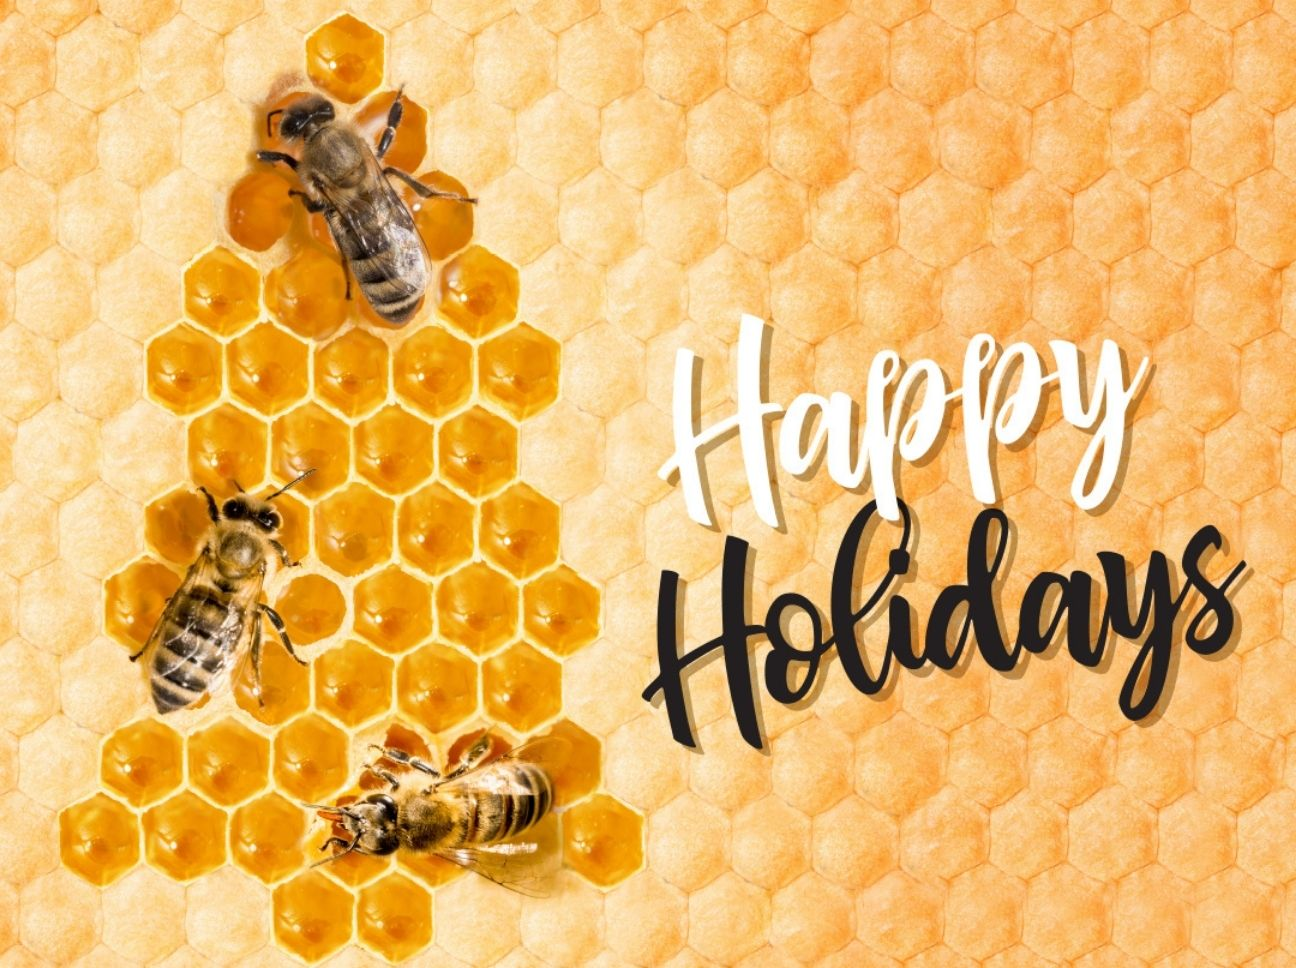 Happy Holidays Beekeepers!